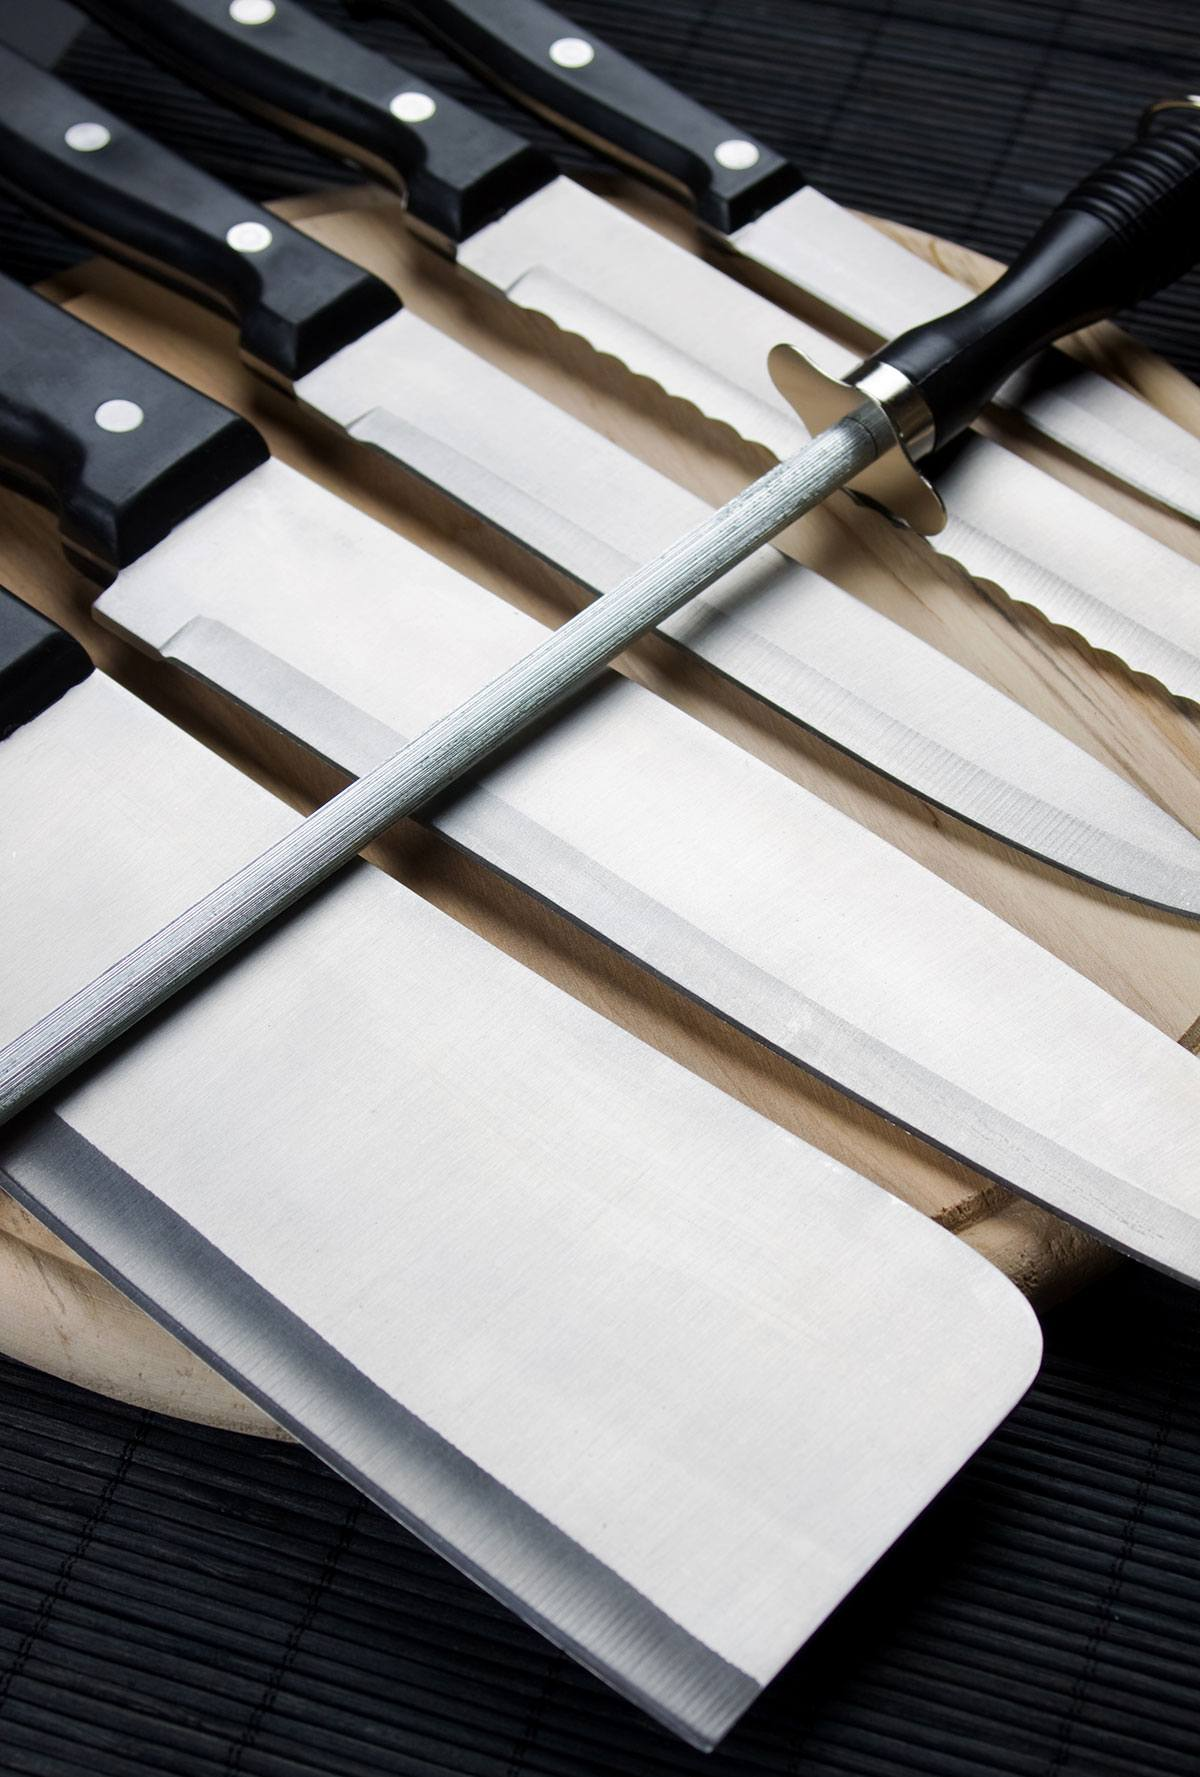 The butcher knife blades